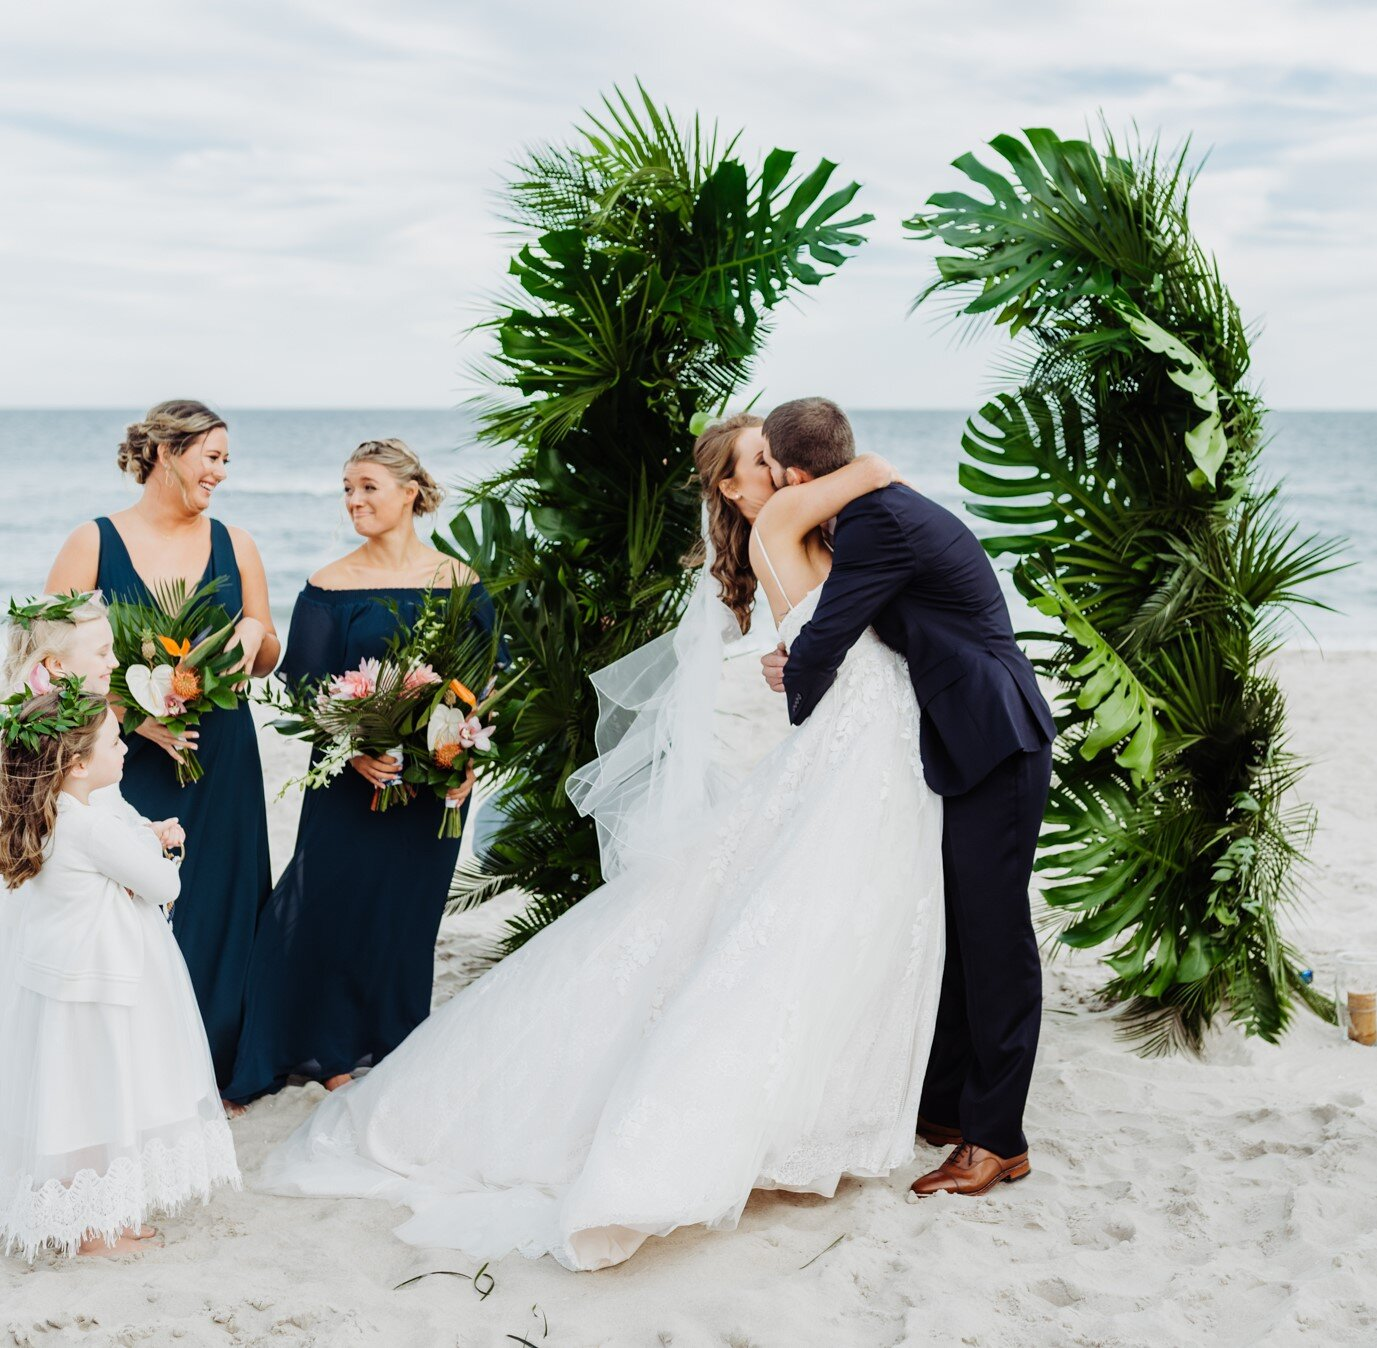 Beach+Wedding+Crim+Barefoot+Beach+Bride+(2)